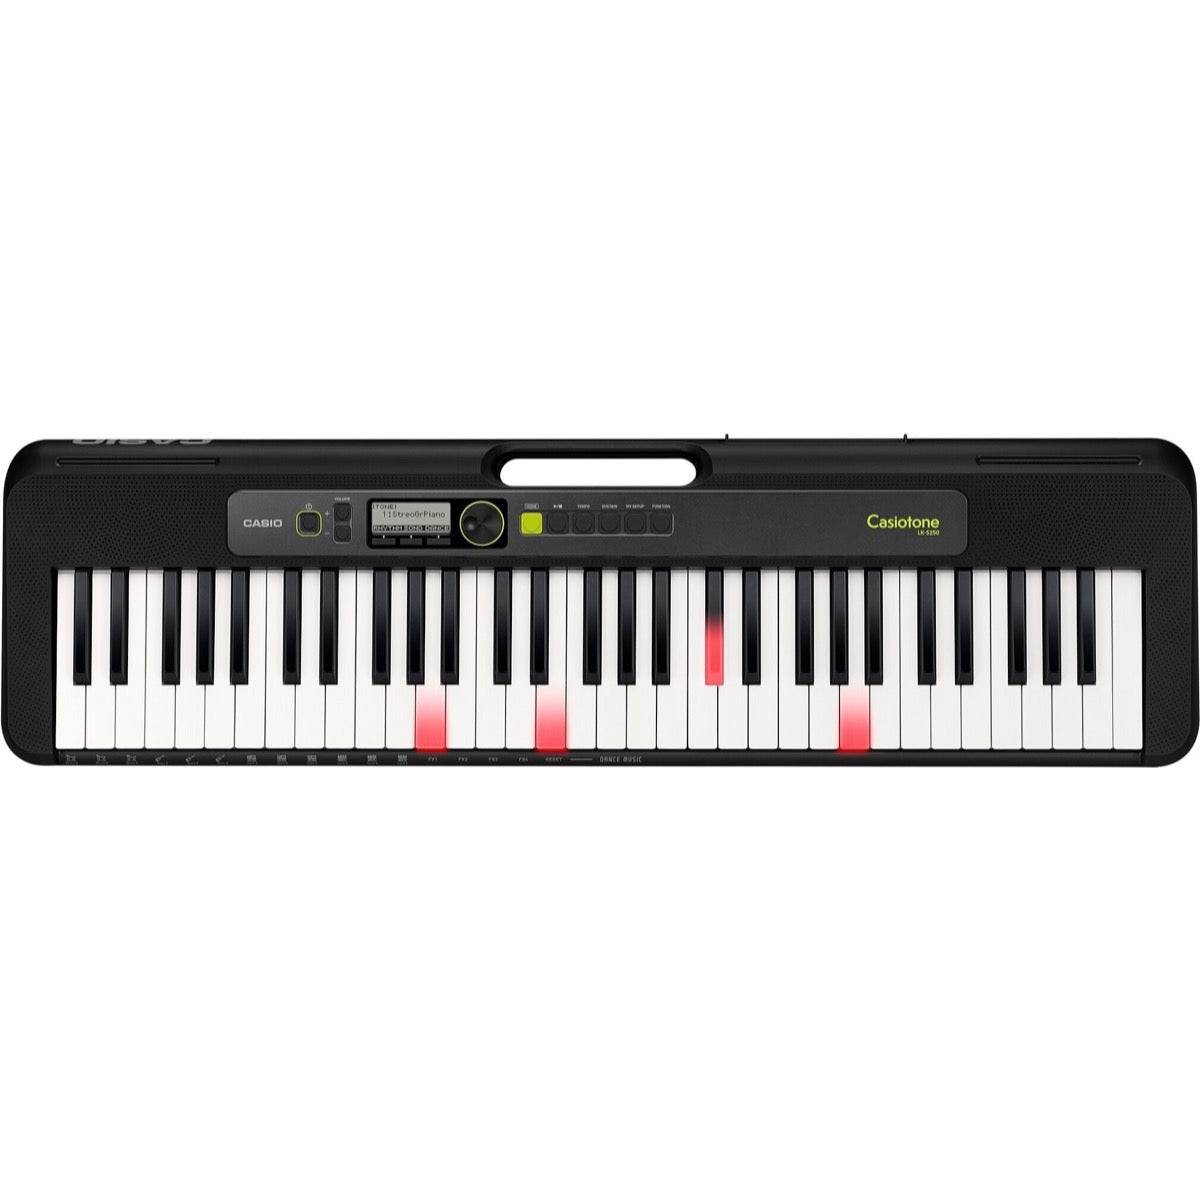 Casio LK-S250 Casiotone Portable Electronic Keyboard